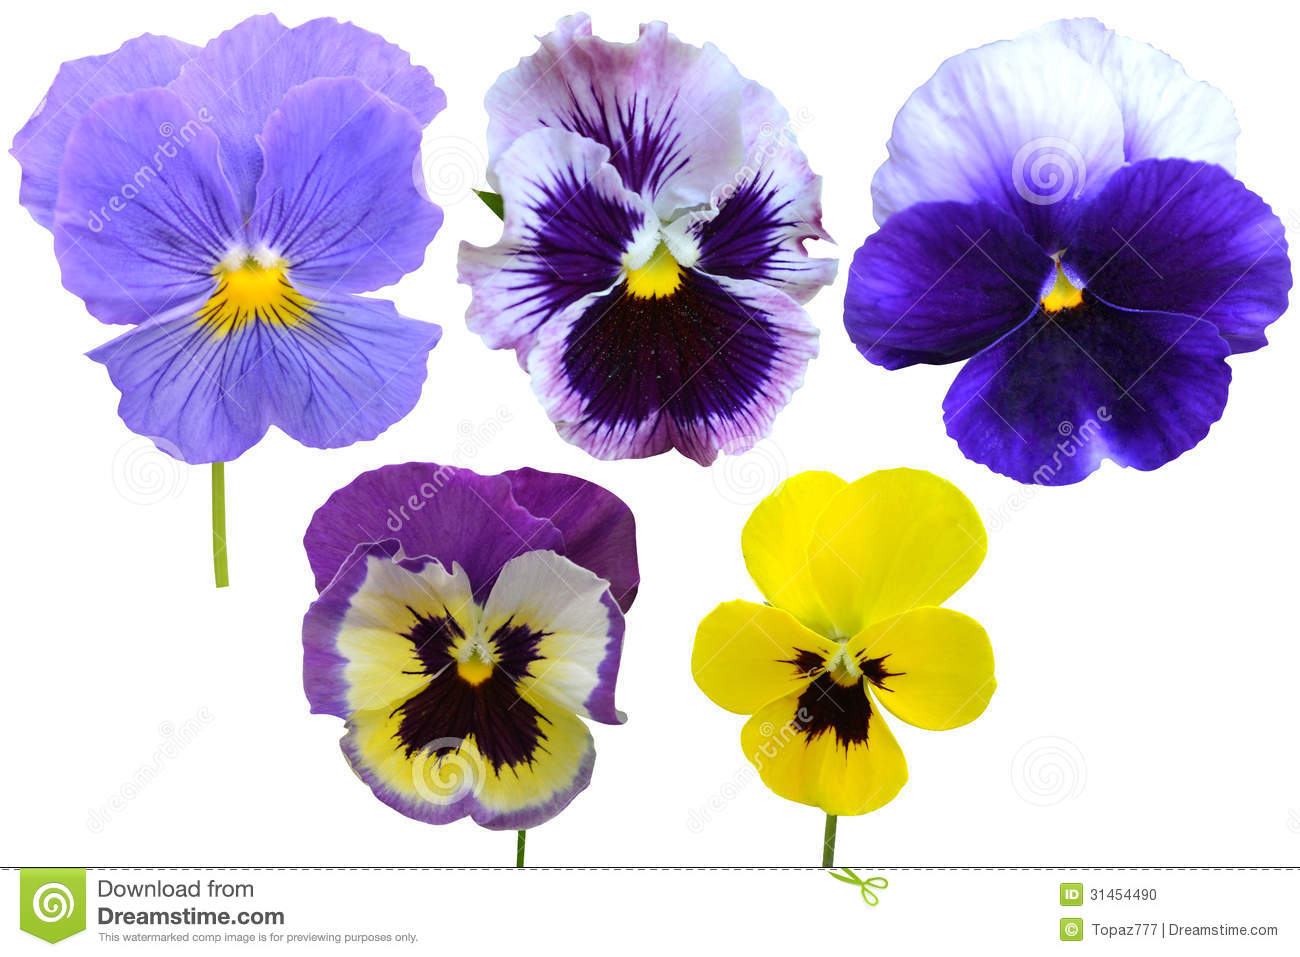 Pansies Violets Flowers Stock Photo Image 31454490